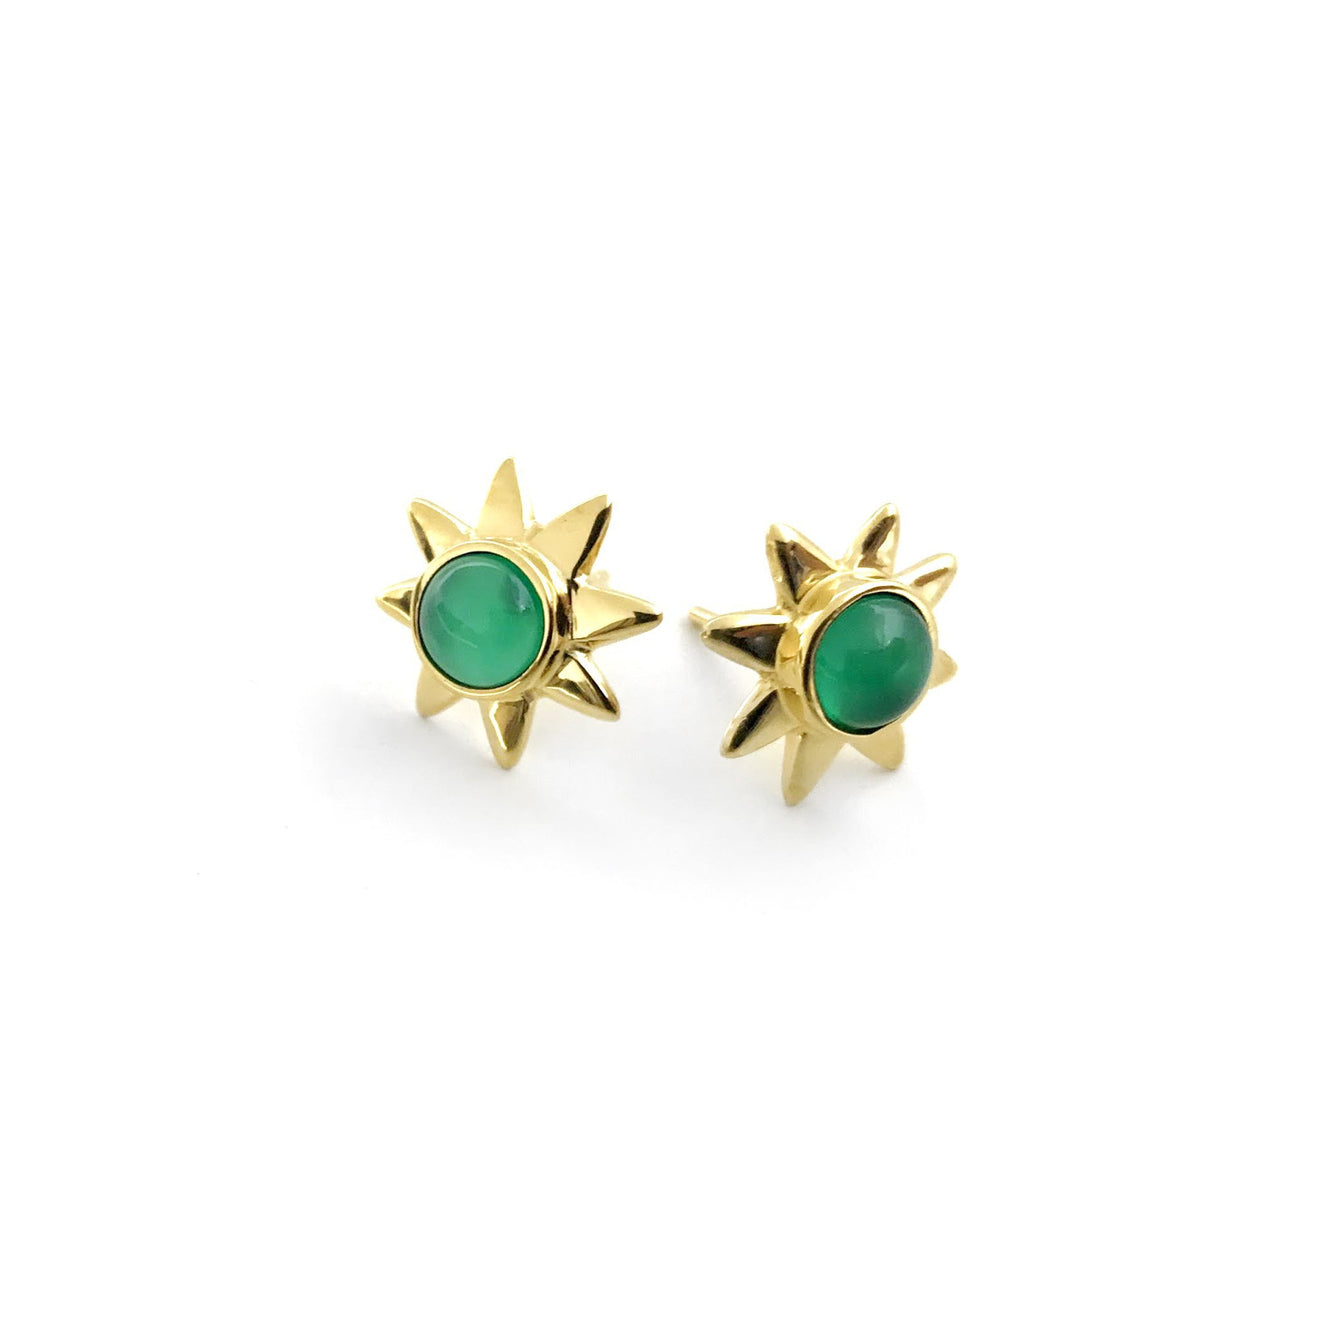 Starr 24k Gold Studs Genuine Gemstone Earrings-Women - Jewelry - Earrings-ADDISON WEEKS-Emerald-Peccadilly